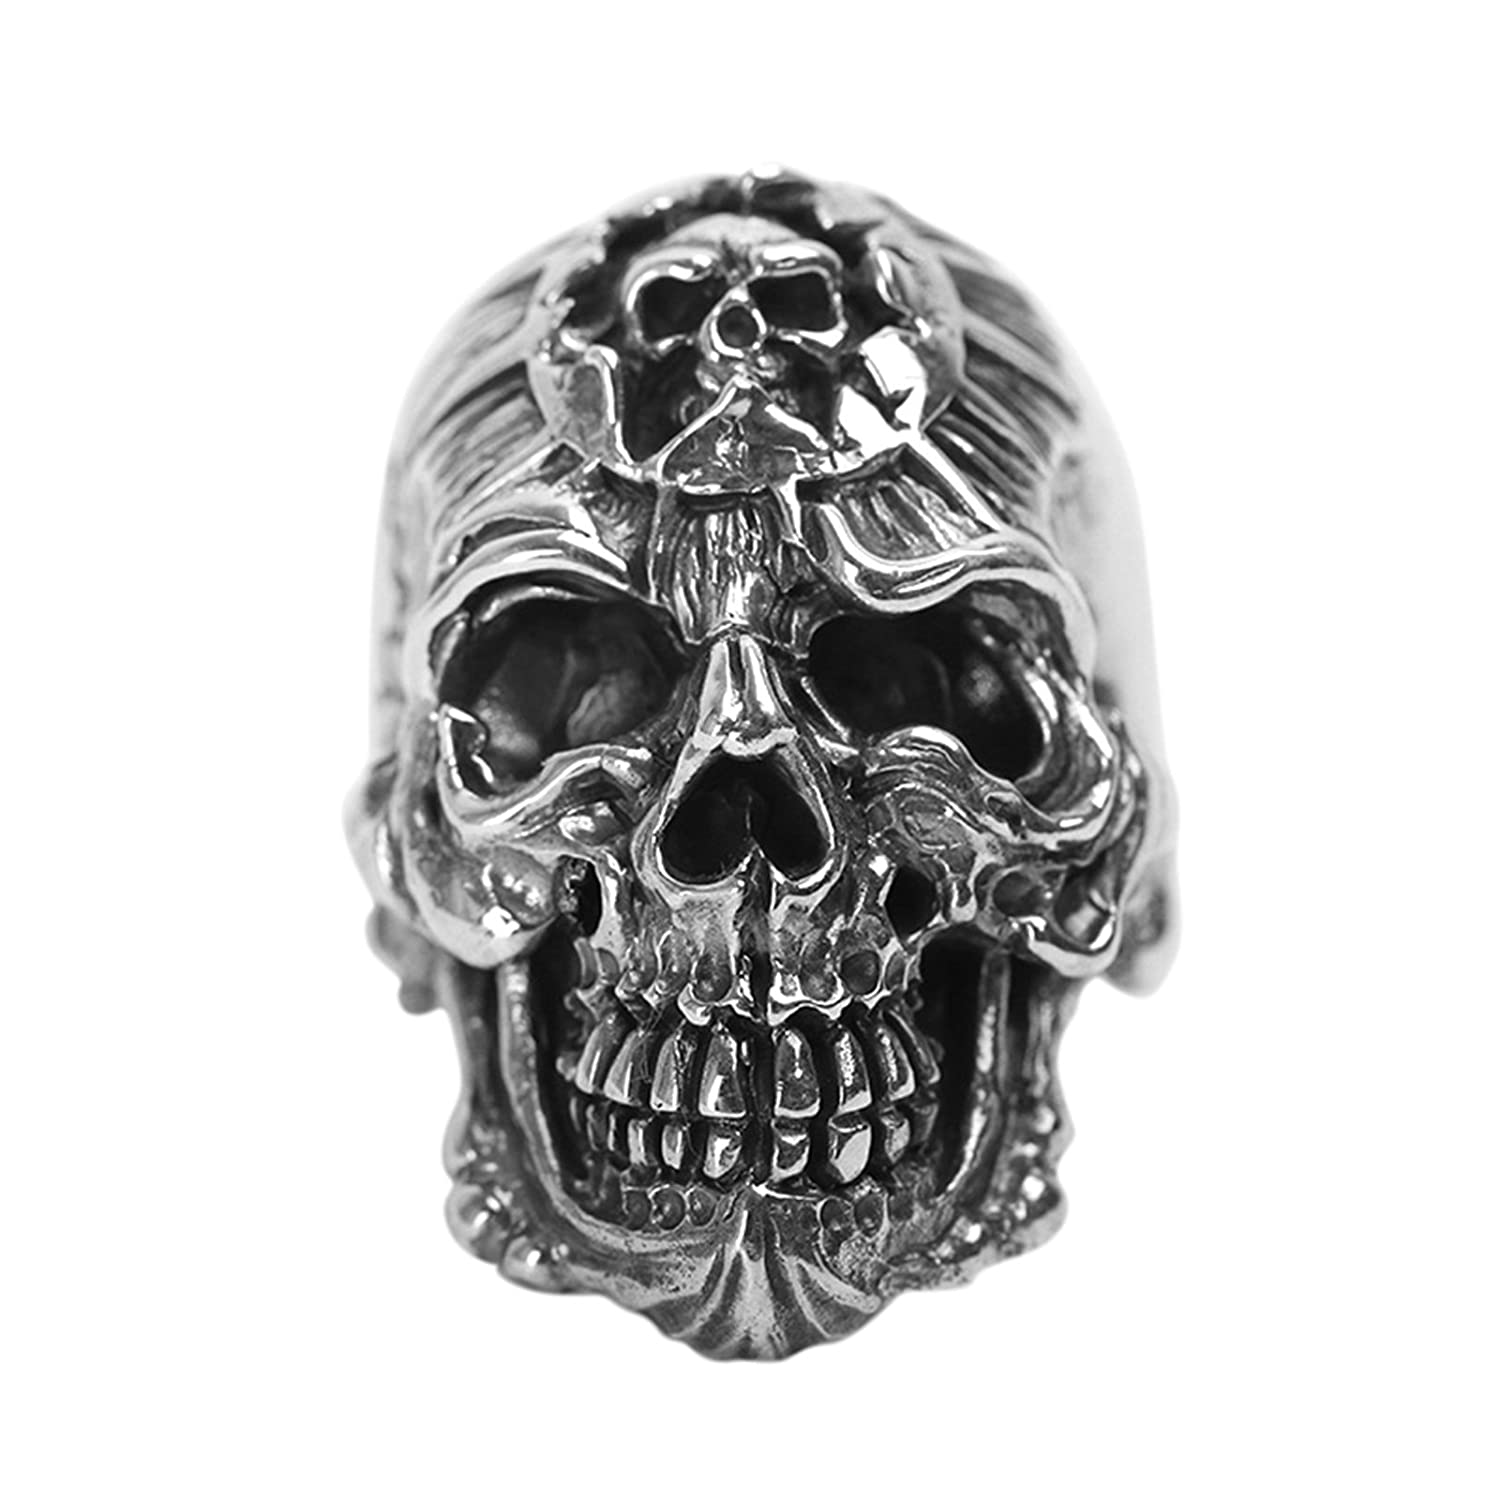 Gnarly Sterling Silver Skull Men's Pirate Ring - DeluxeAdultCostumes.com